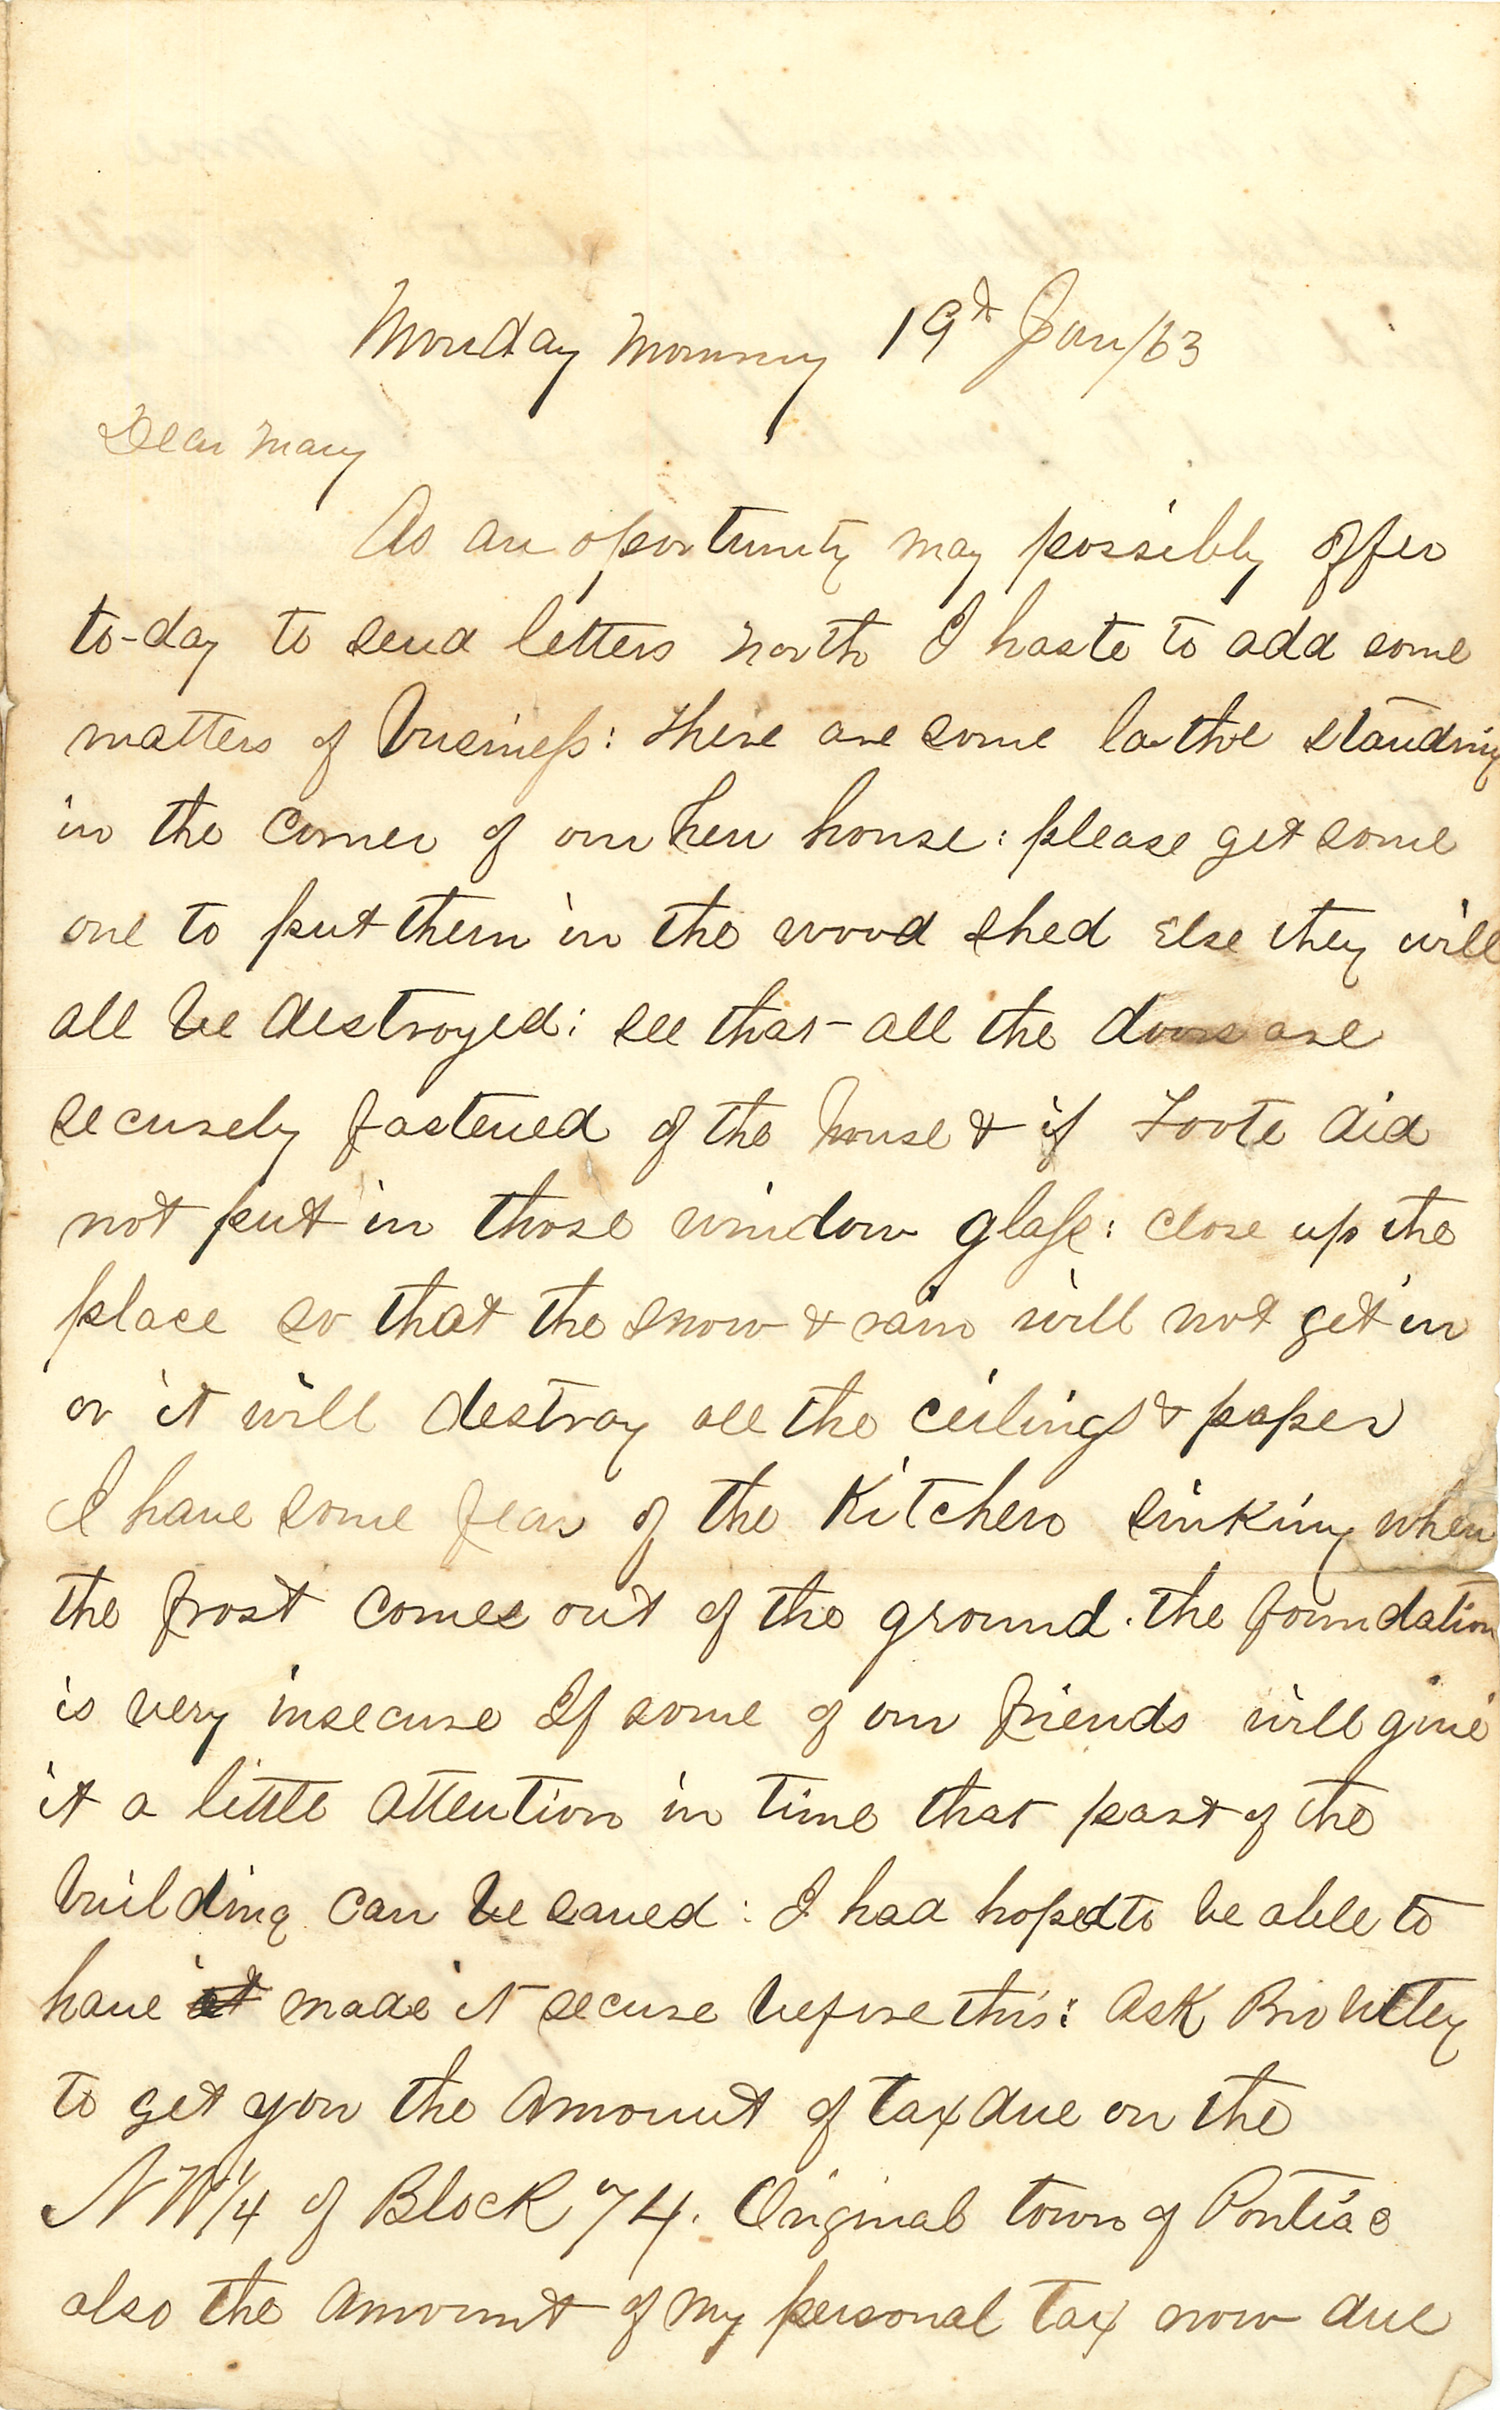 Joseph Culver Letter, January 19, 1863, Letter 2, Page 1